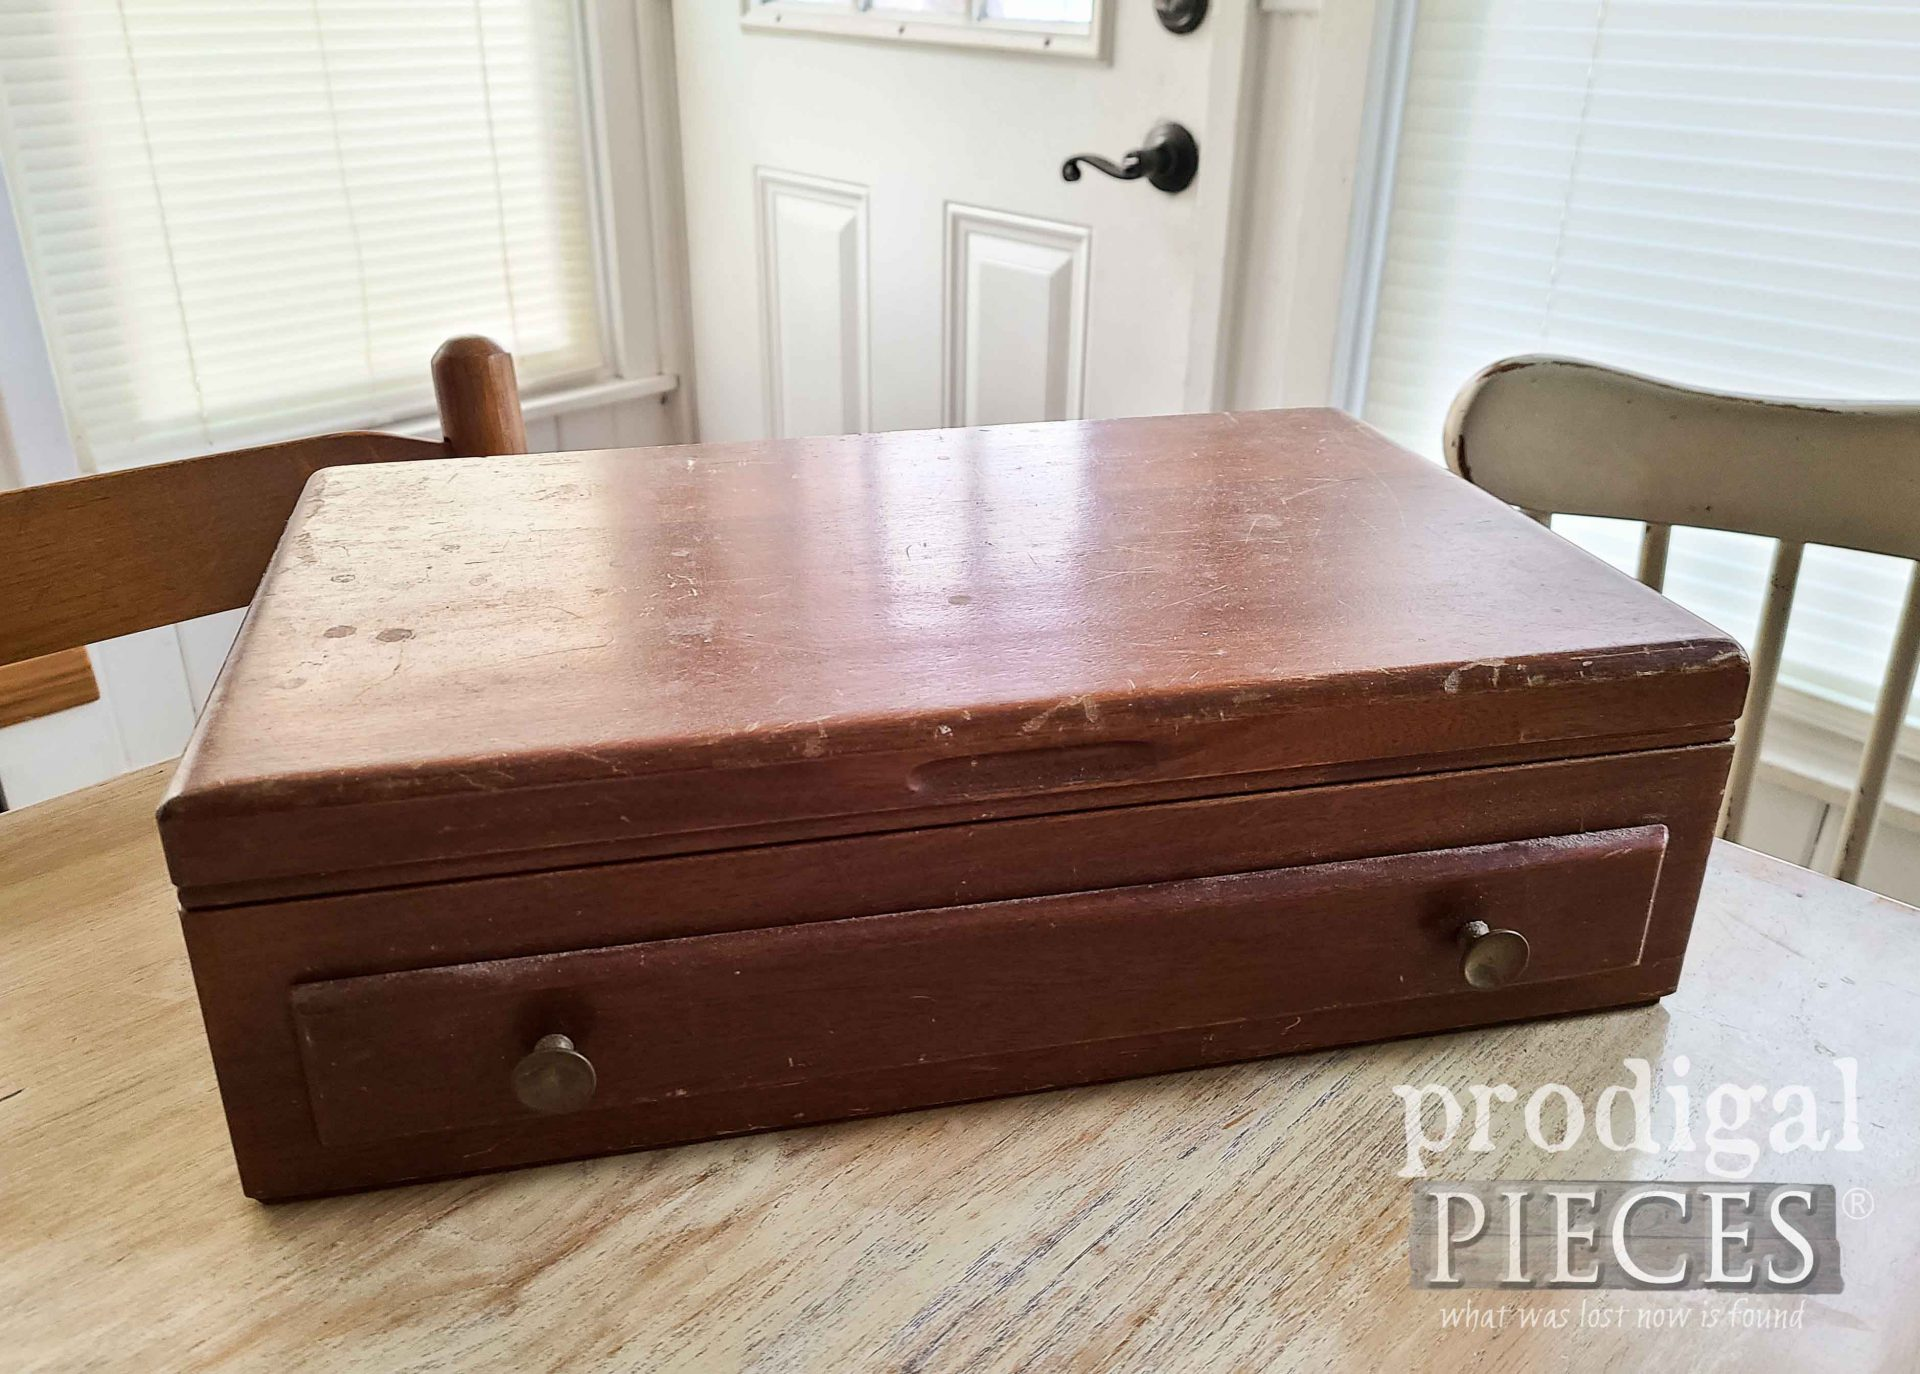 Vintage Silverware Box Before Upcycle by Larissa of Prodigal Pieces | prodigalpieces.com